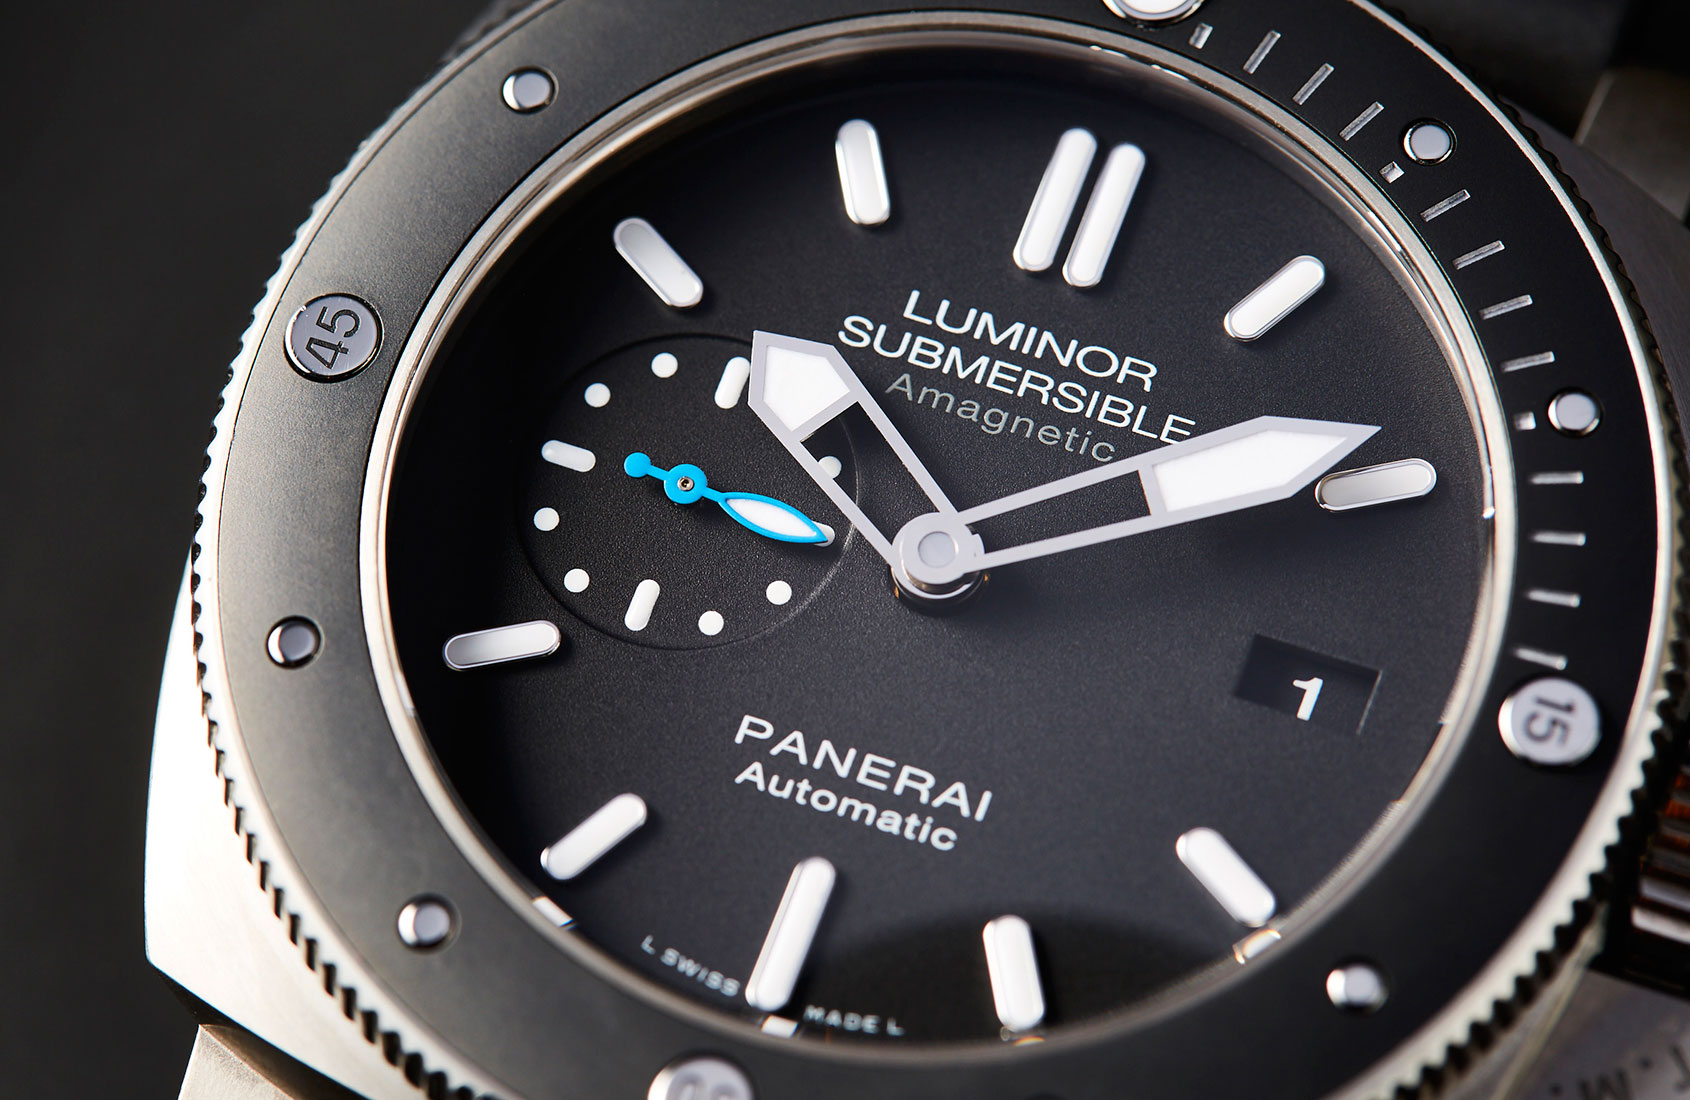 Fast forward to 2017 and we've got a new and improved version of this  Luminor Submersible, with an updated reference number to match — PAM 1389.